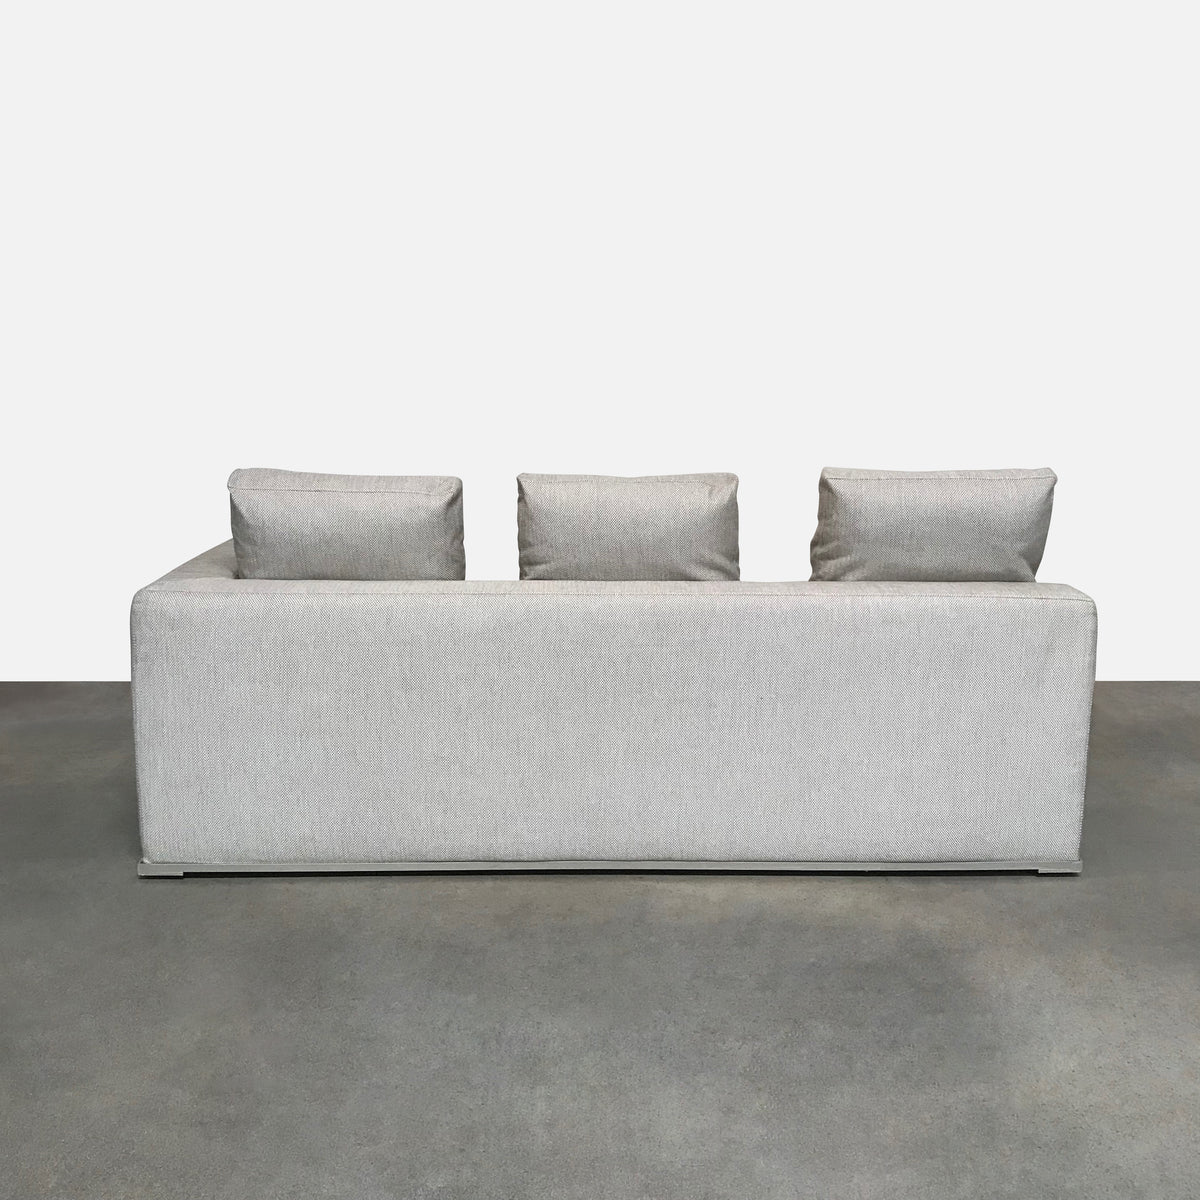 Maxalto 'Omnia' Light Taupe with Grey Flecks Right End Sofa Bed by Antonio Citterio